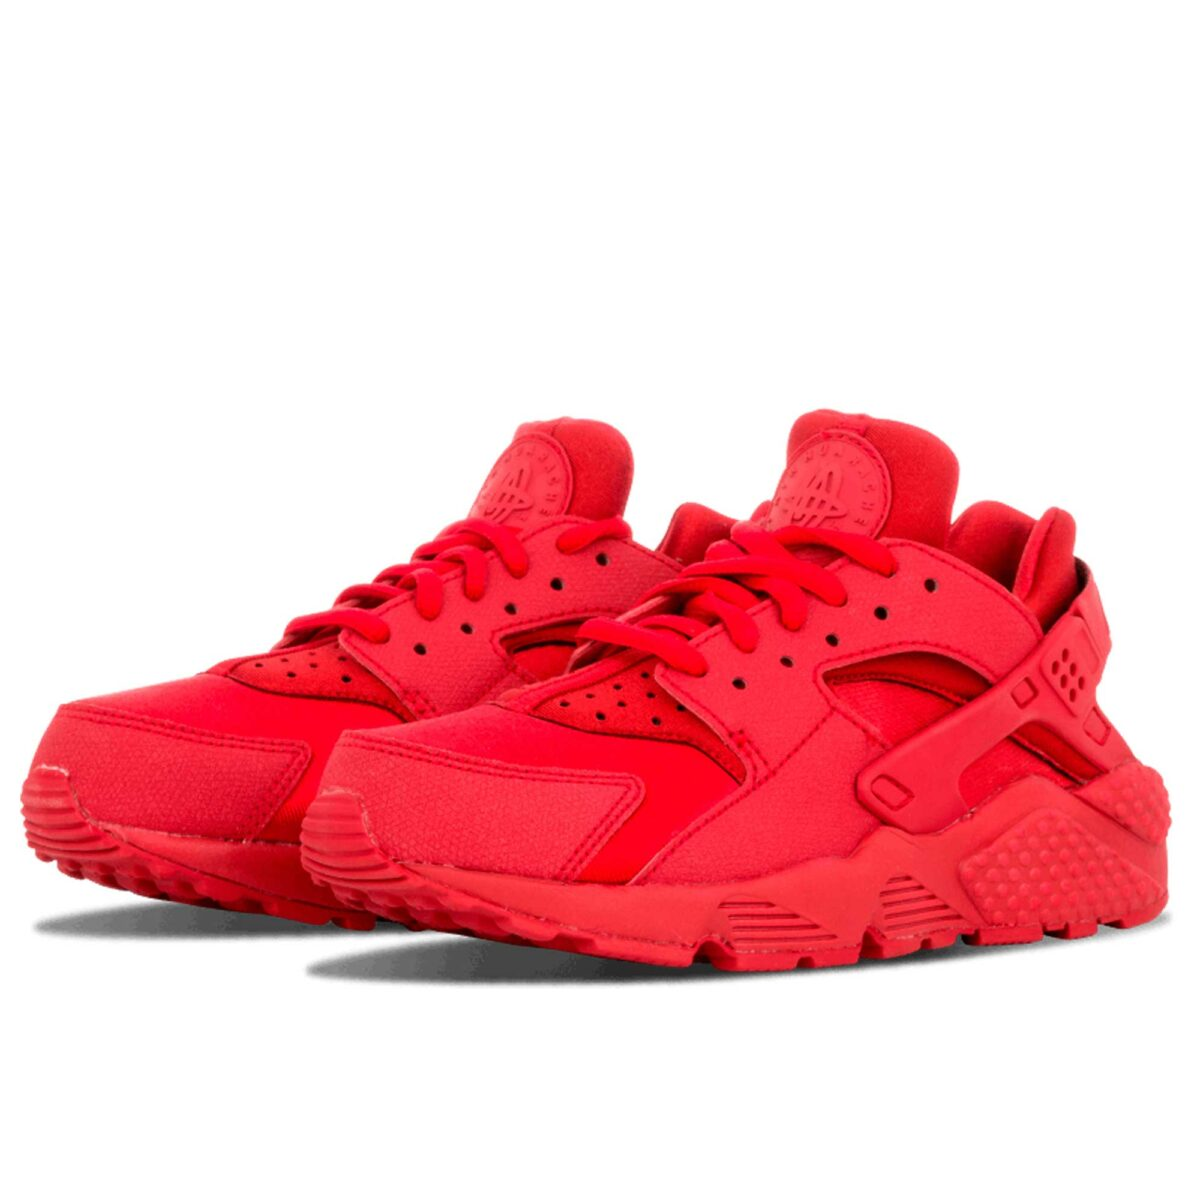 nike air huarache run all red 634835_601 купить